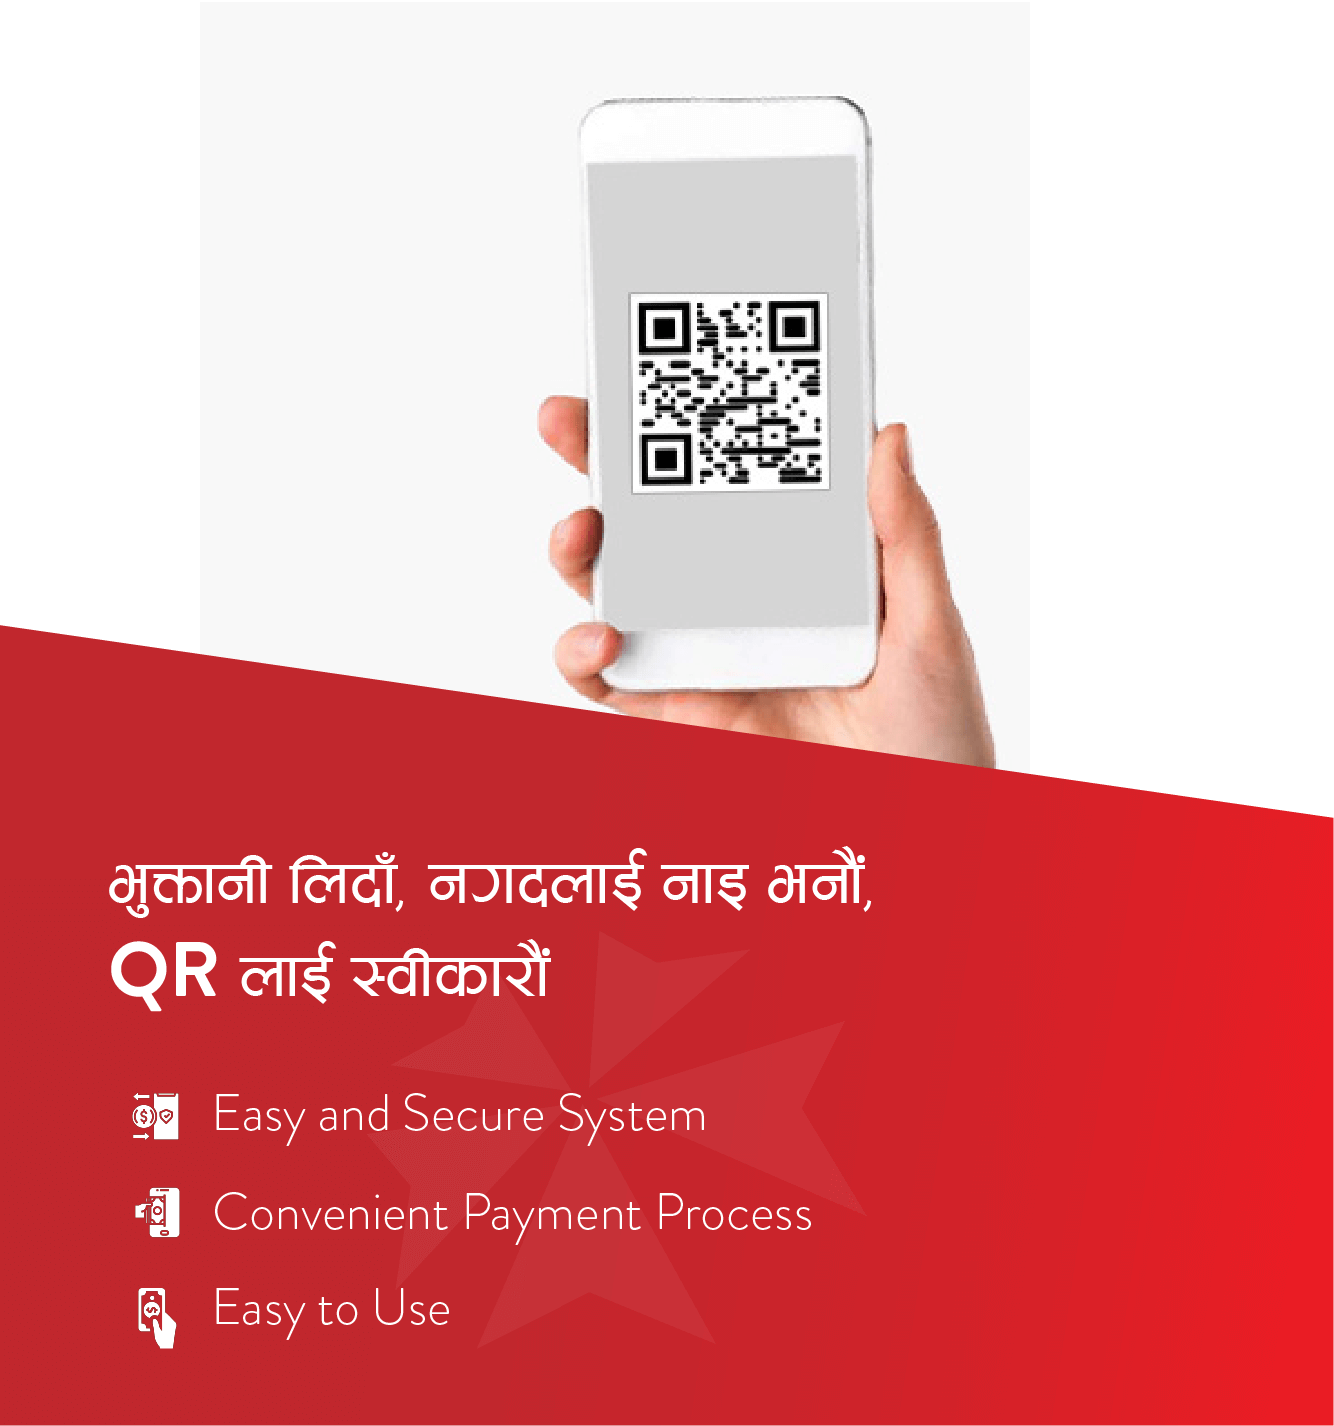 NIC Asia Bank QR Merchant Payment in Nepal